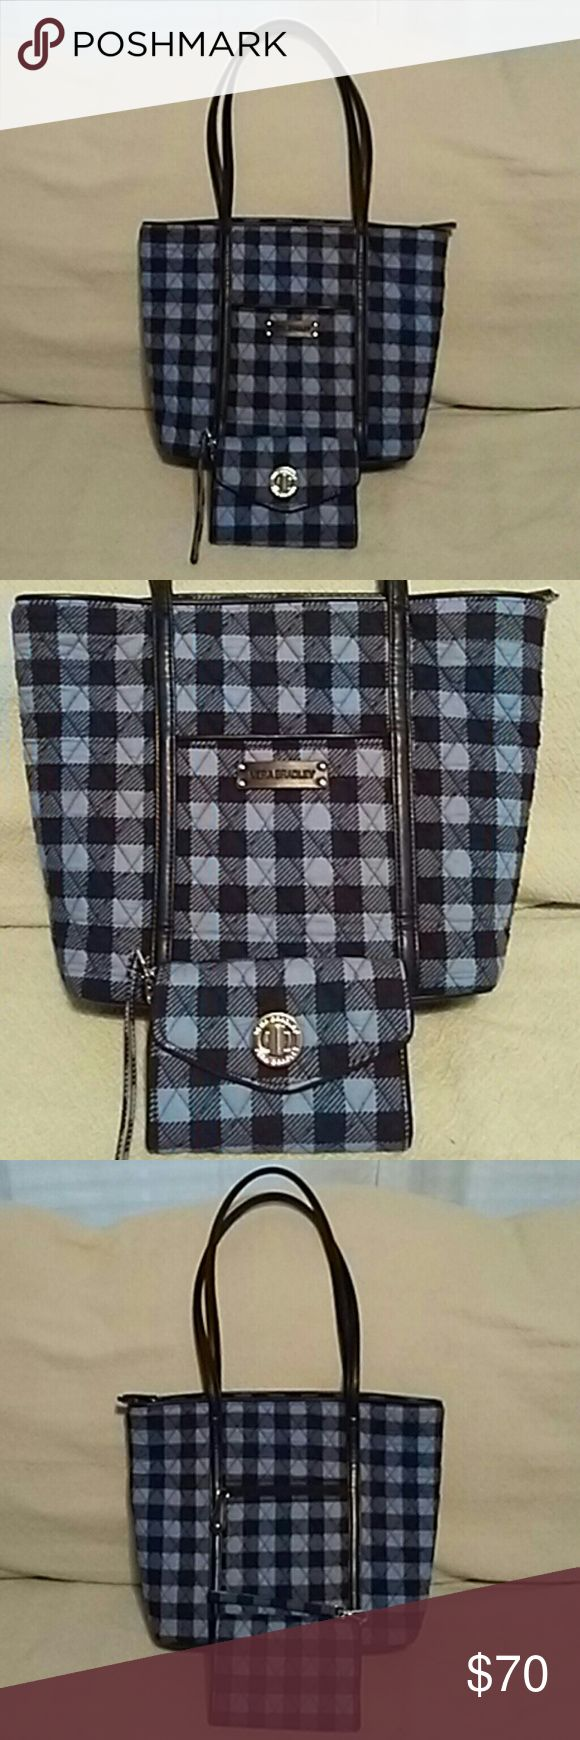 Vera Bradley Tote Bag With Matching Wallet Plaid Quilted Vera Bradley tote bag light blue and black with plenty of rooms inside with many pockets and 2 outside pockets front and back with matching wallet in Excellent Condition used twice clean inside in out. Vera Bradley Bags Totes